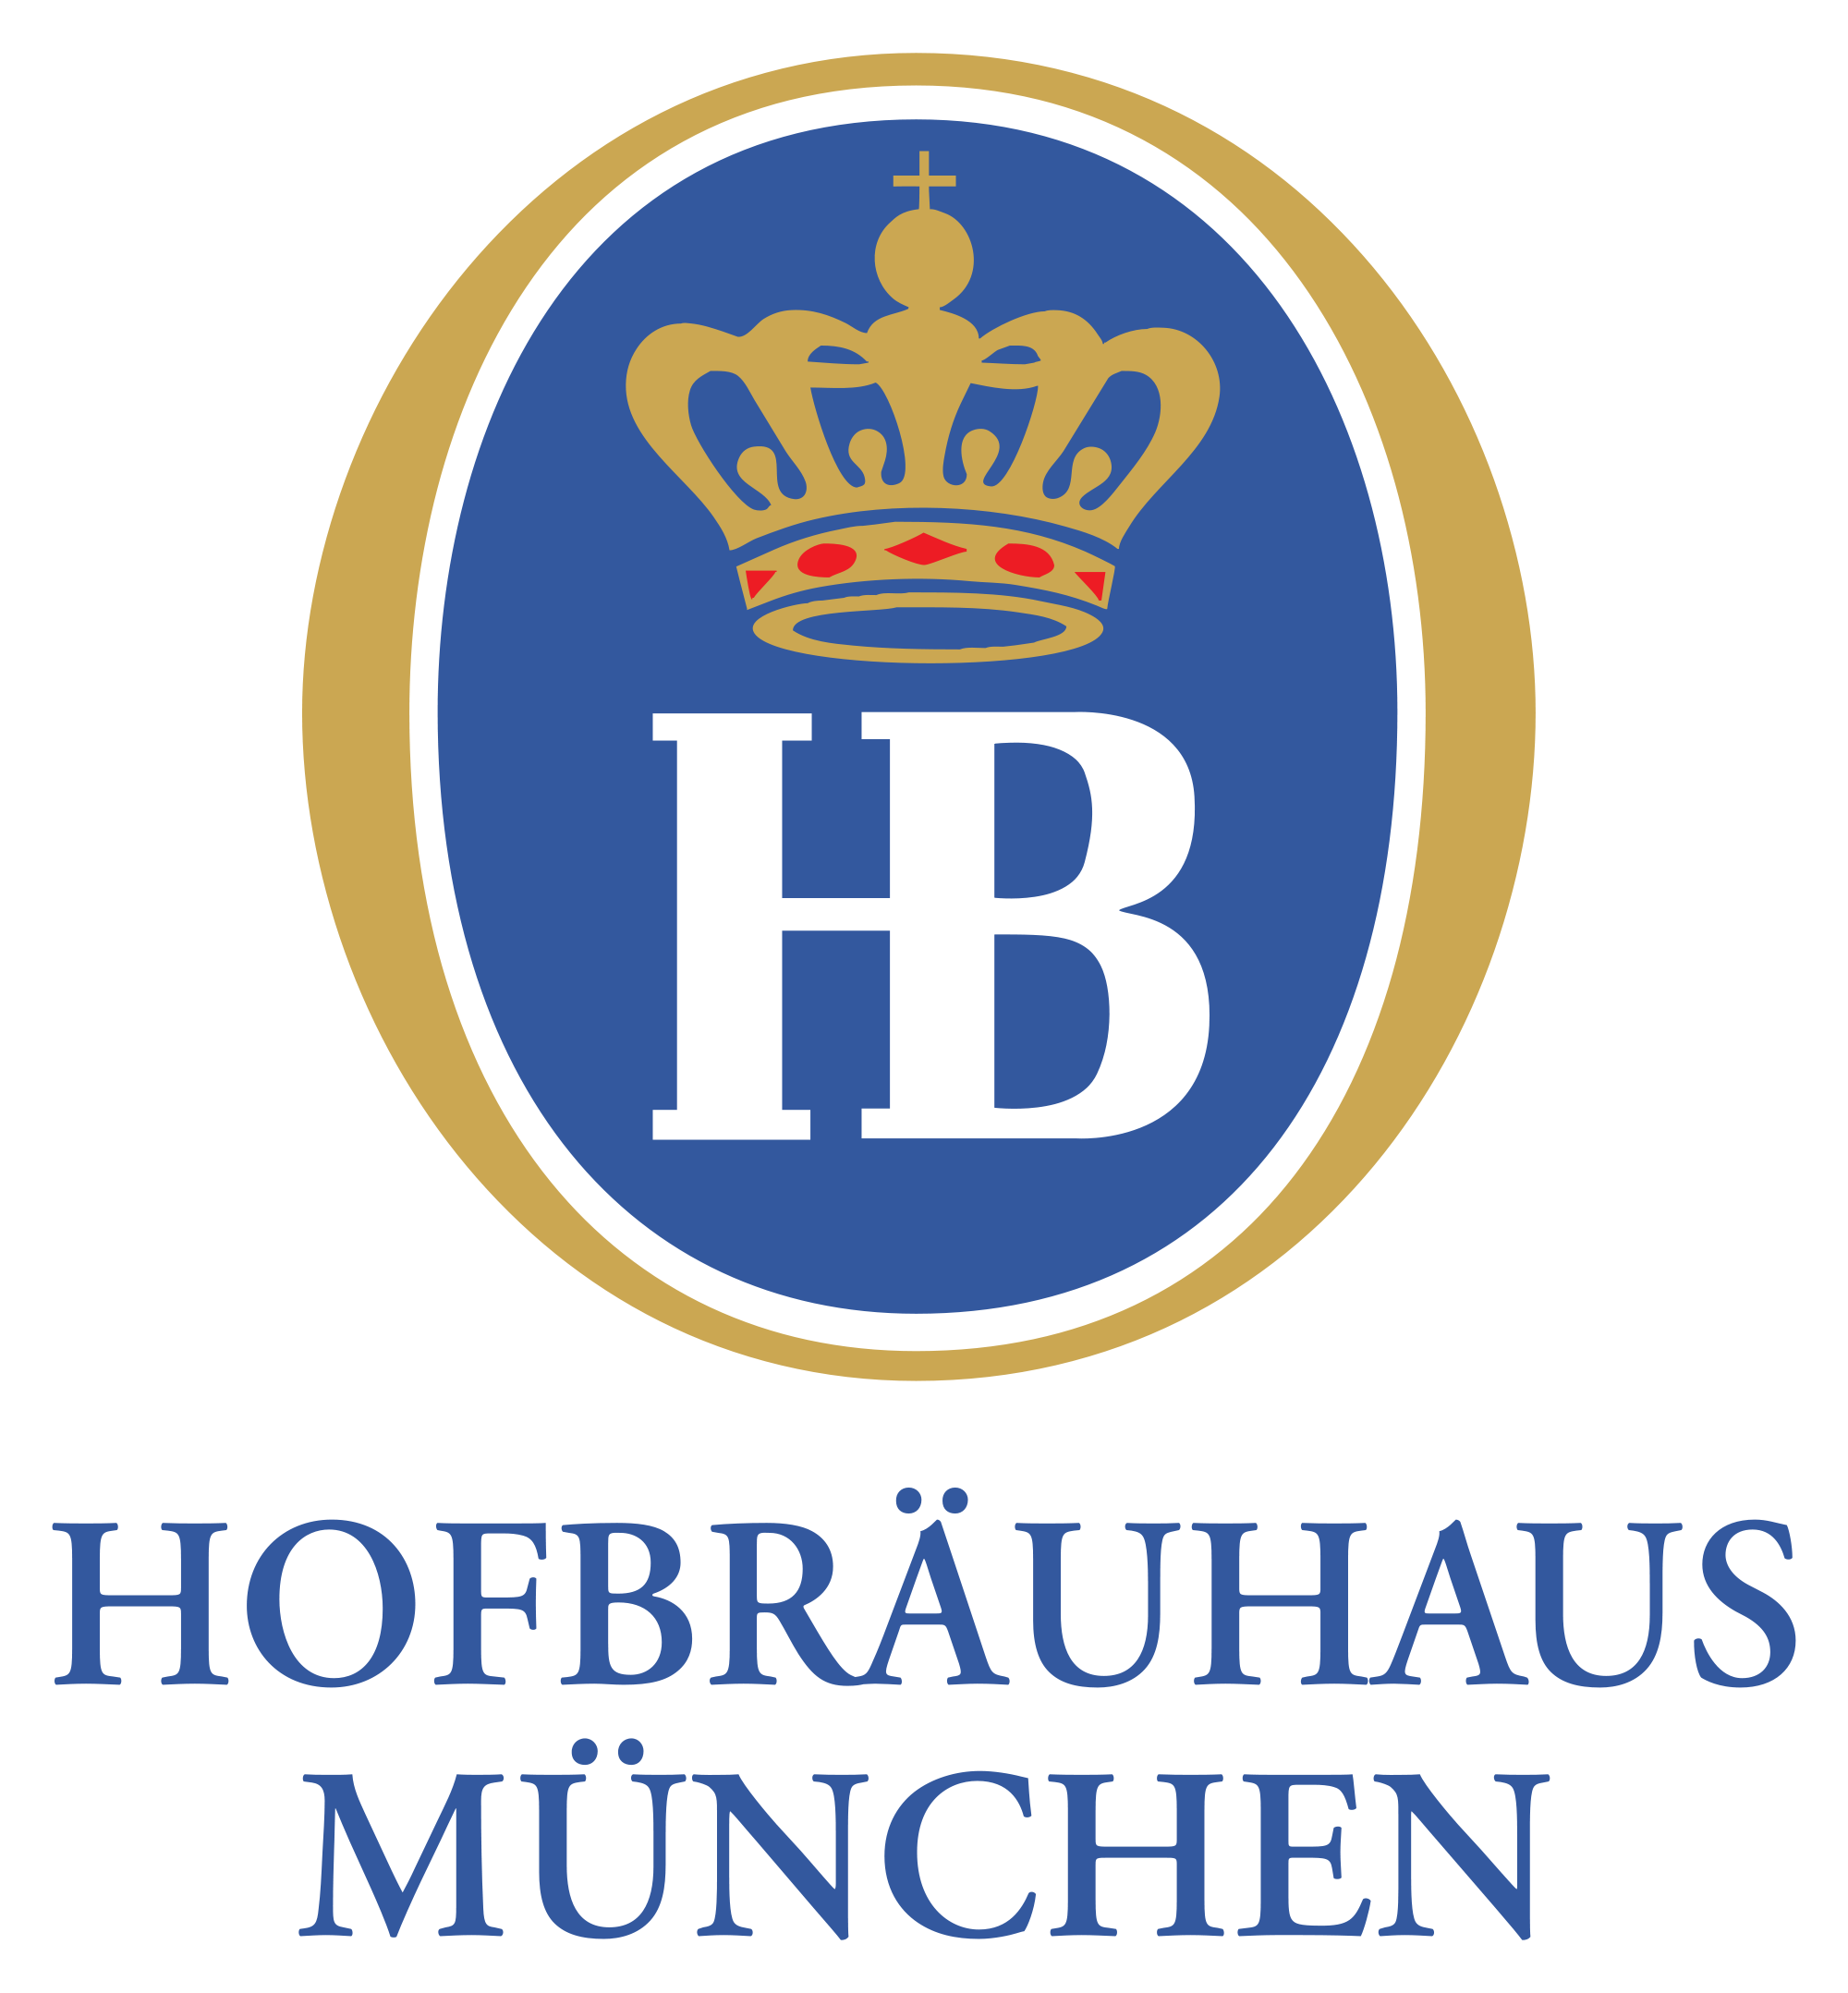 Staatliches_Hofbräuhaus_Logo_(2002-Present).png